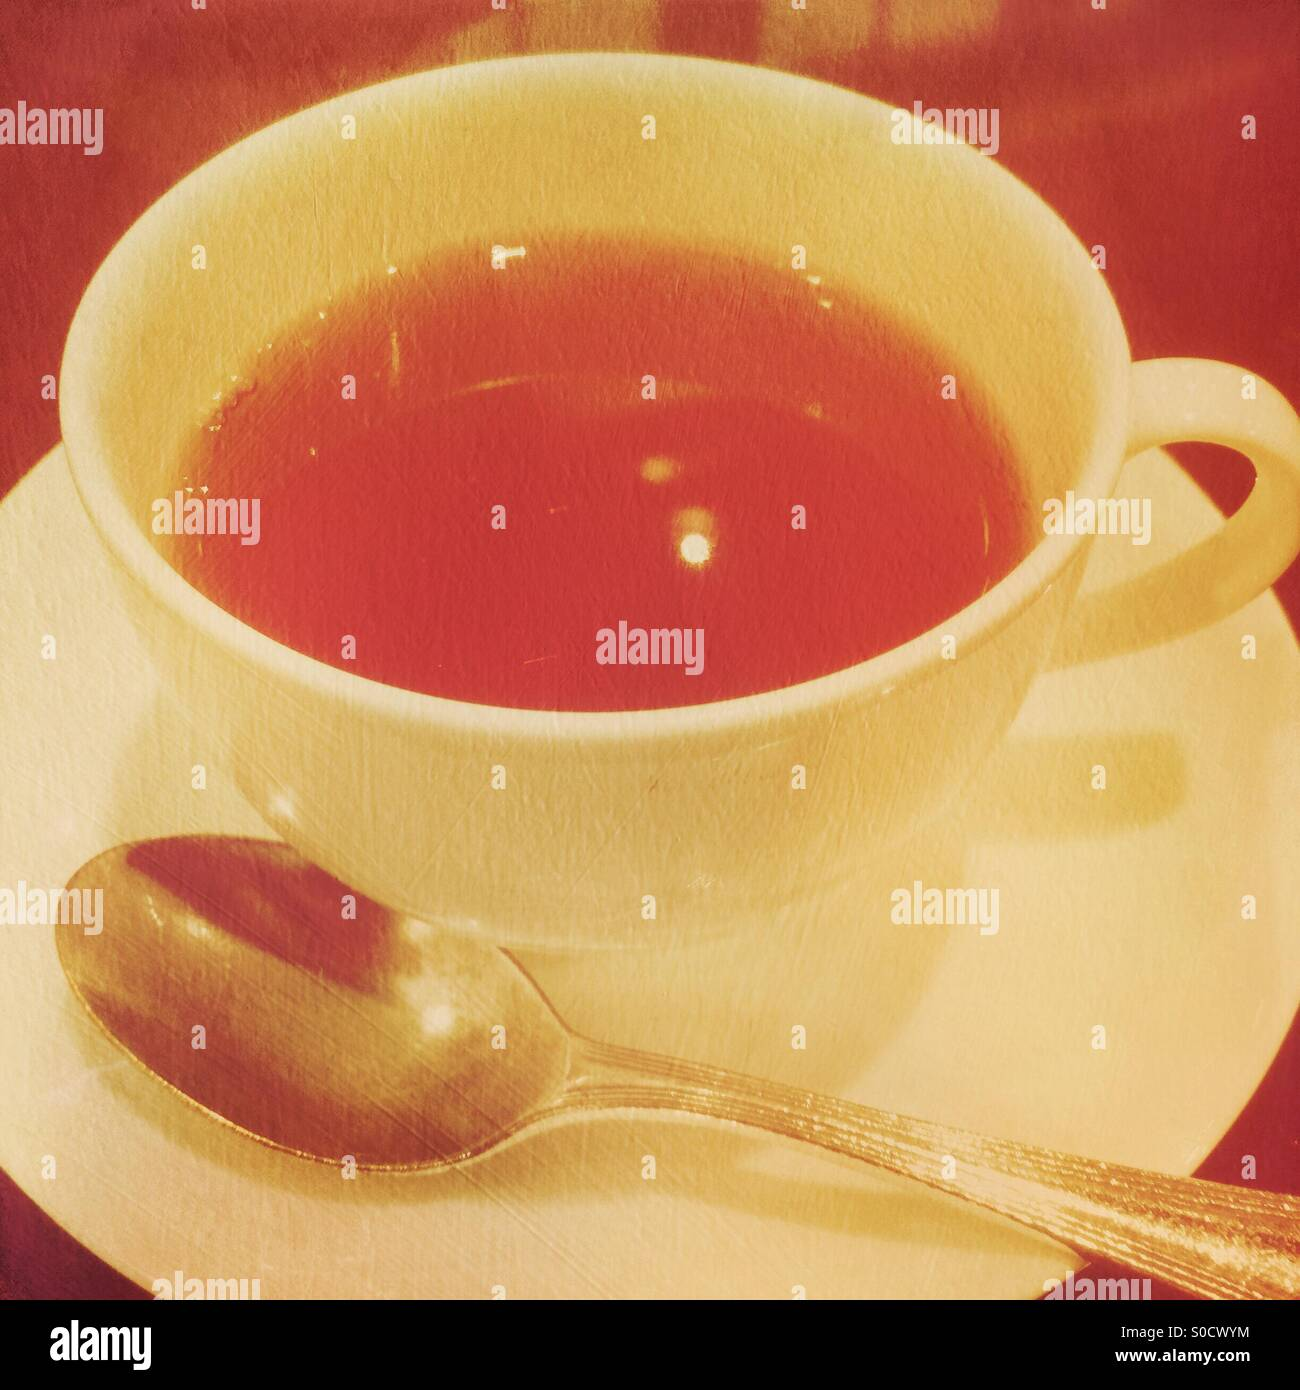 Cup of tea with vintage texture overlay. - Stock Image